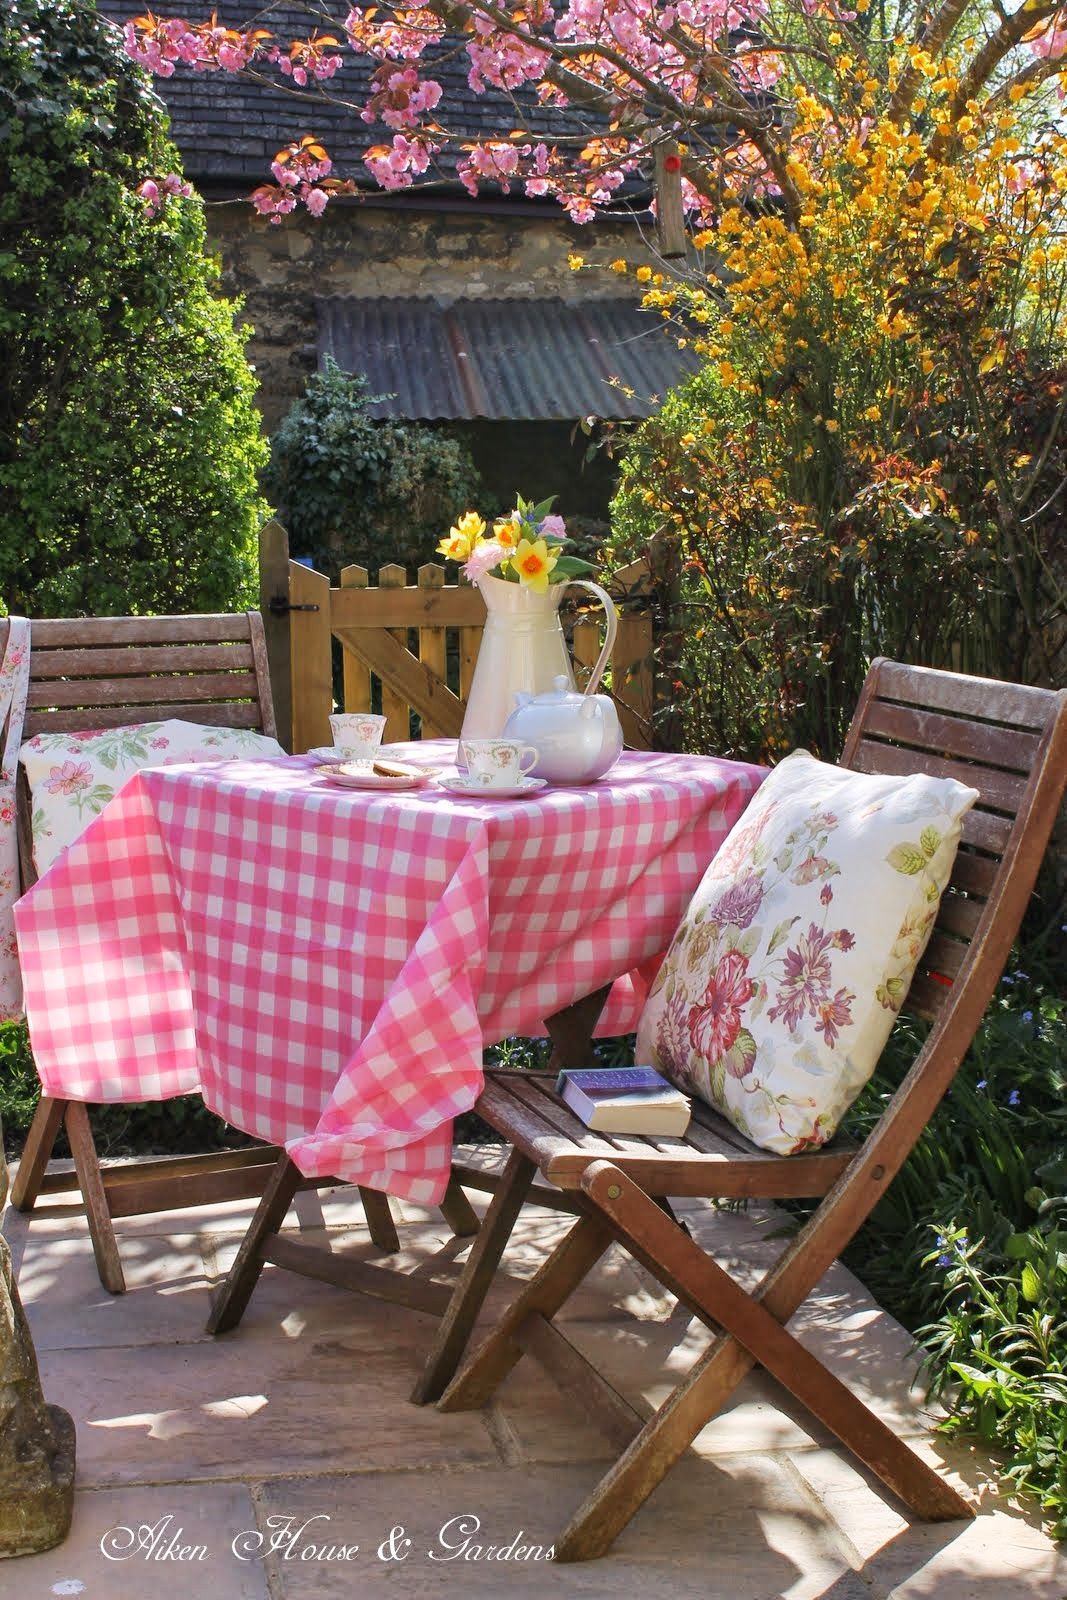 into from outdoor old how end french upcycling chairs furniture high com make them to bench styled style cottage a anoregoncottage